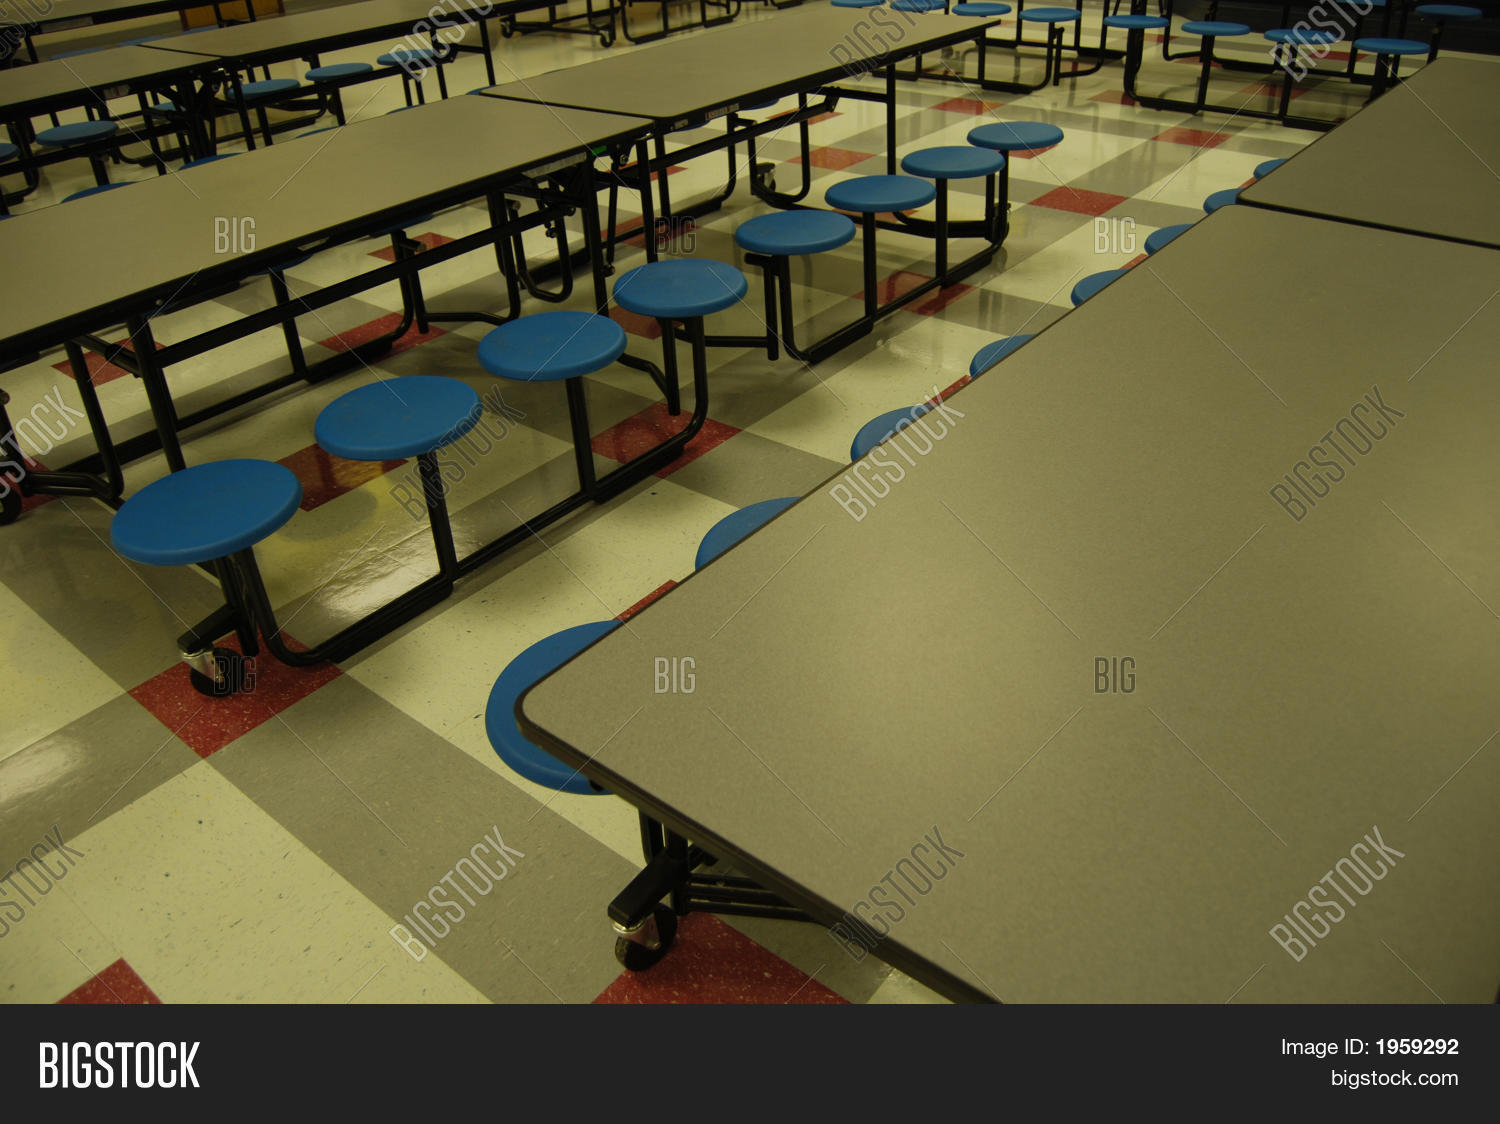 cafe,cafeteria,eat,education,elementary,food,grade,kid,lunch,nutrition,relaxation,school,sitting,snack,student,table,teenager